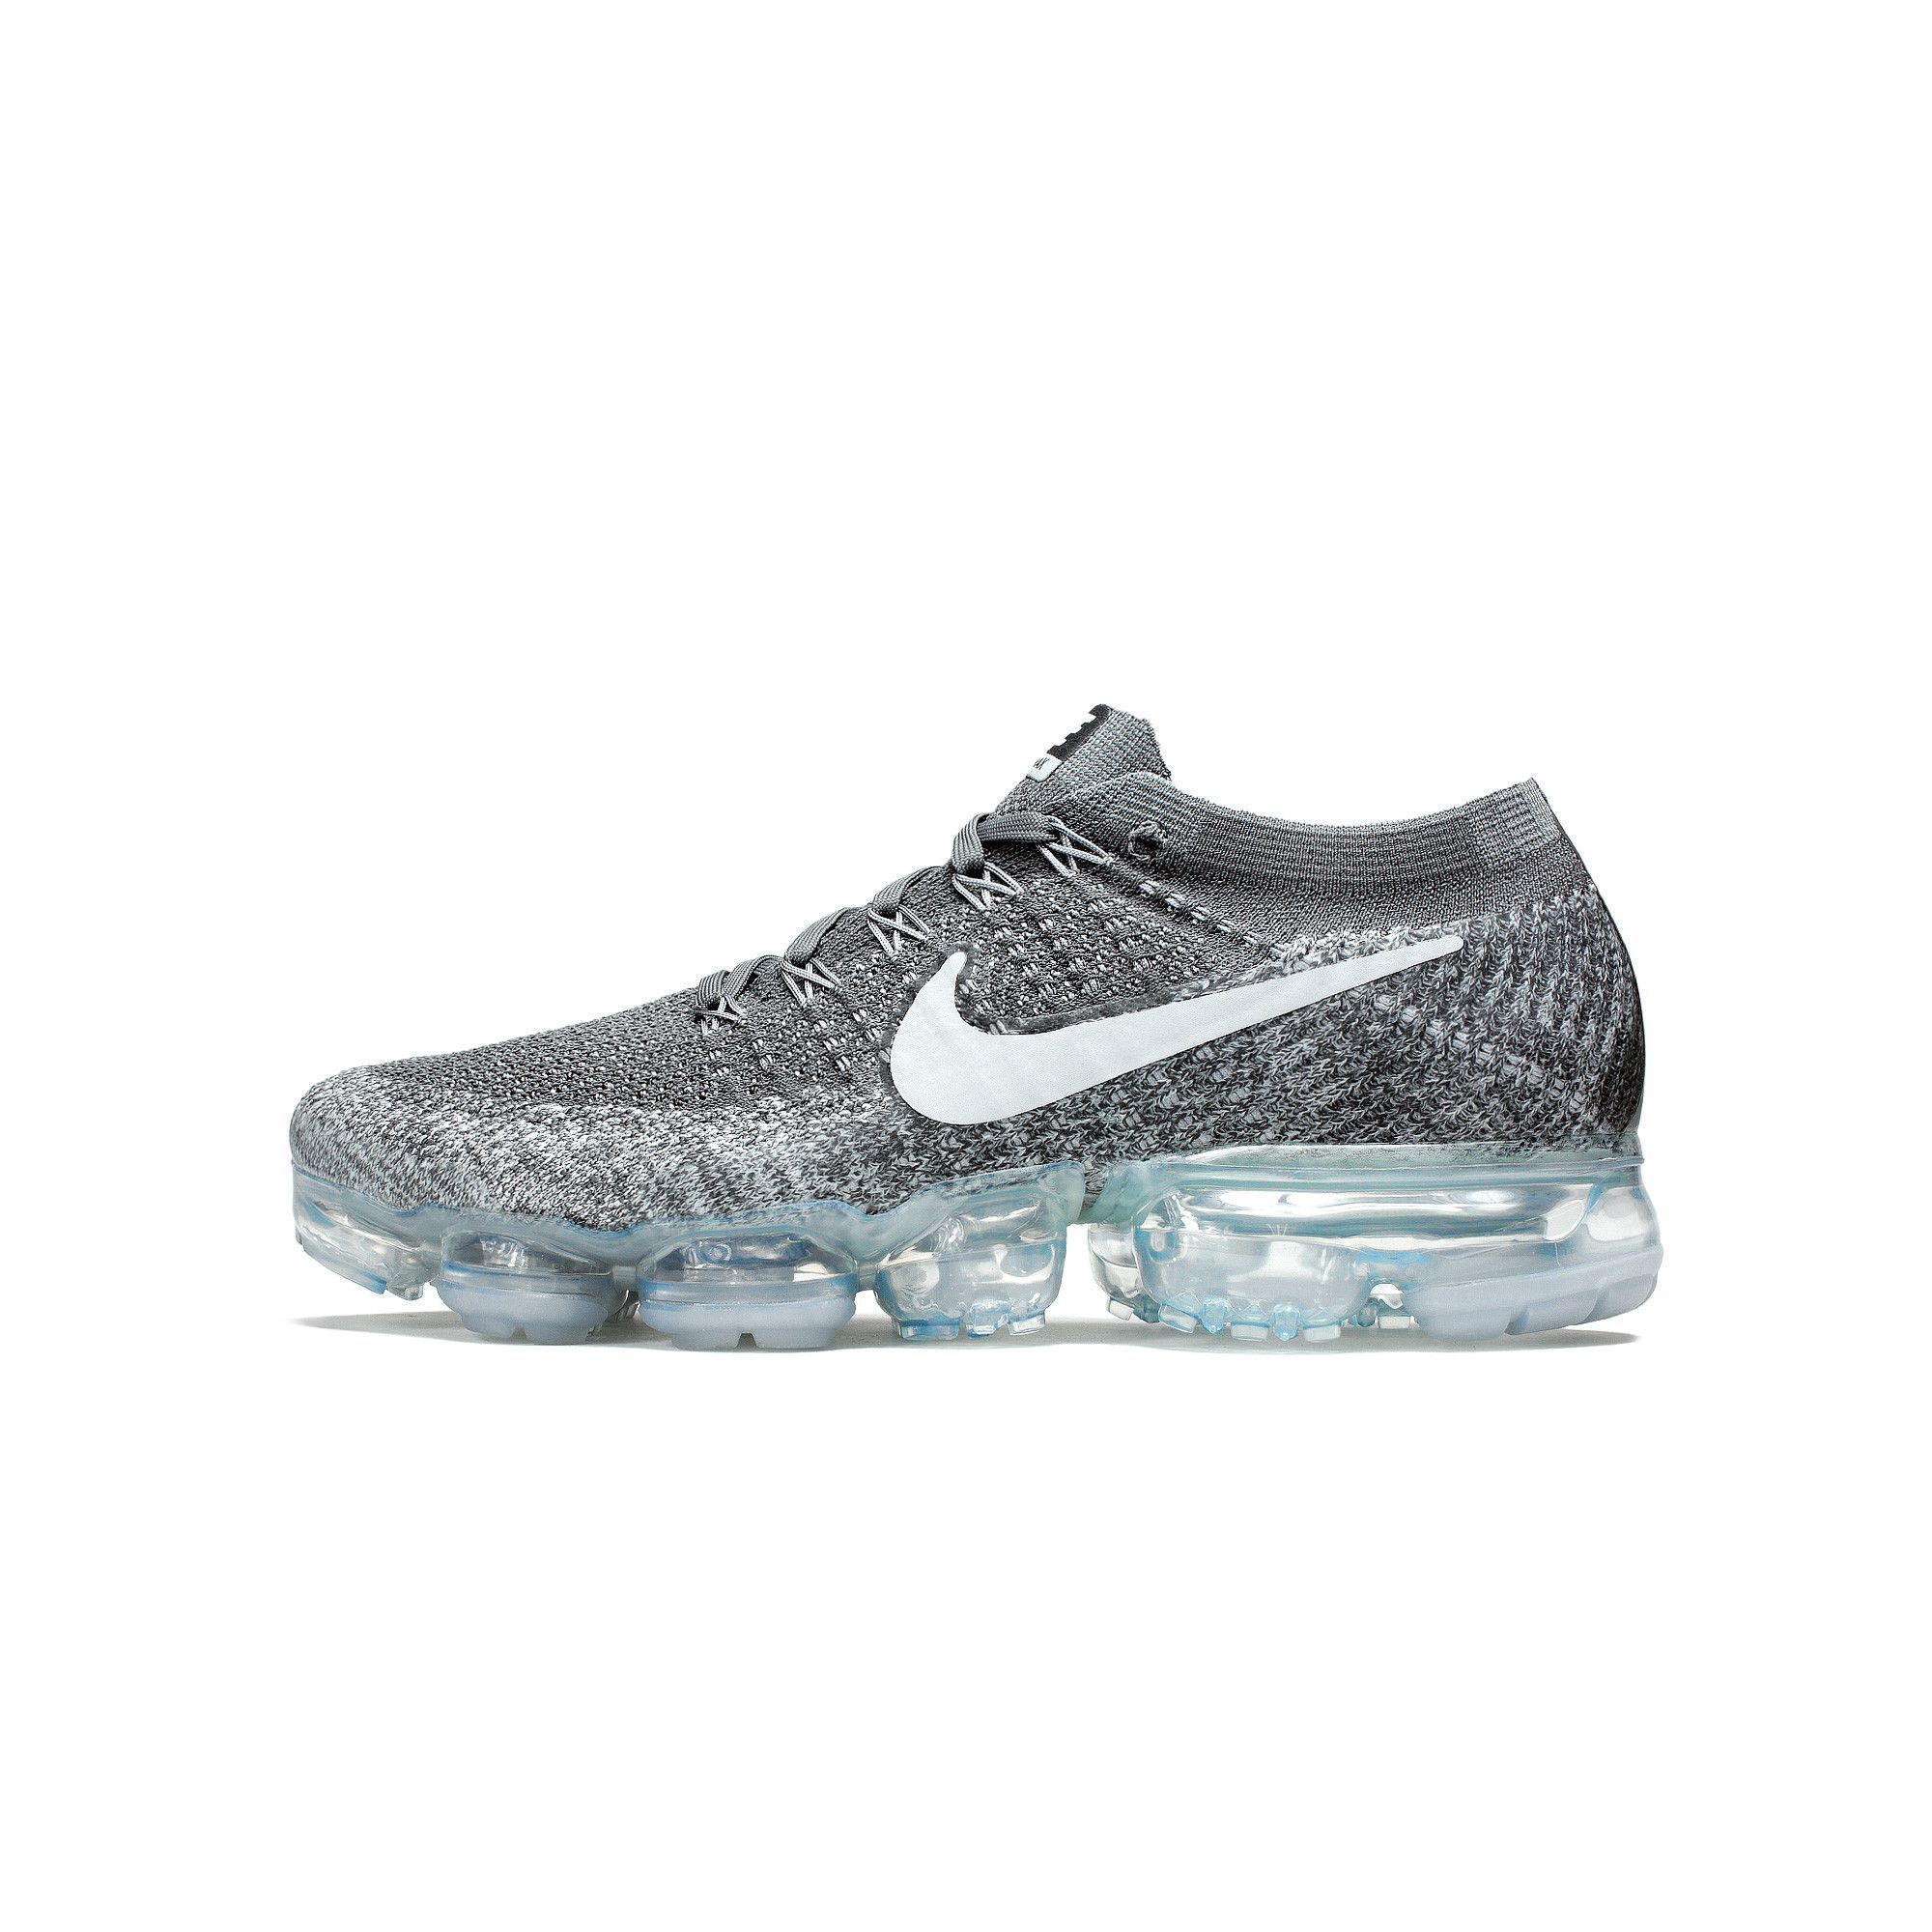 reputable site 42f04 a8c66 ... coupon code for nike mens air vapormax flyknit 4b60d be7ef